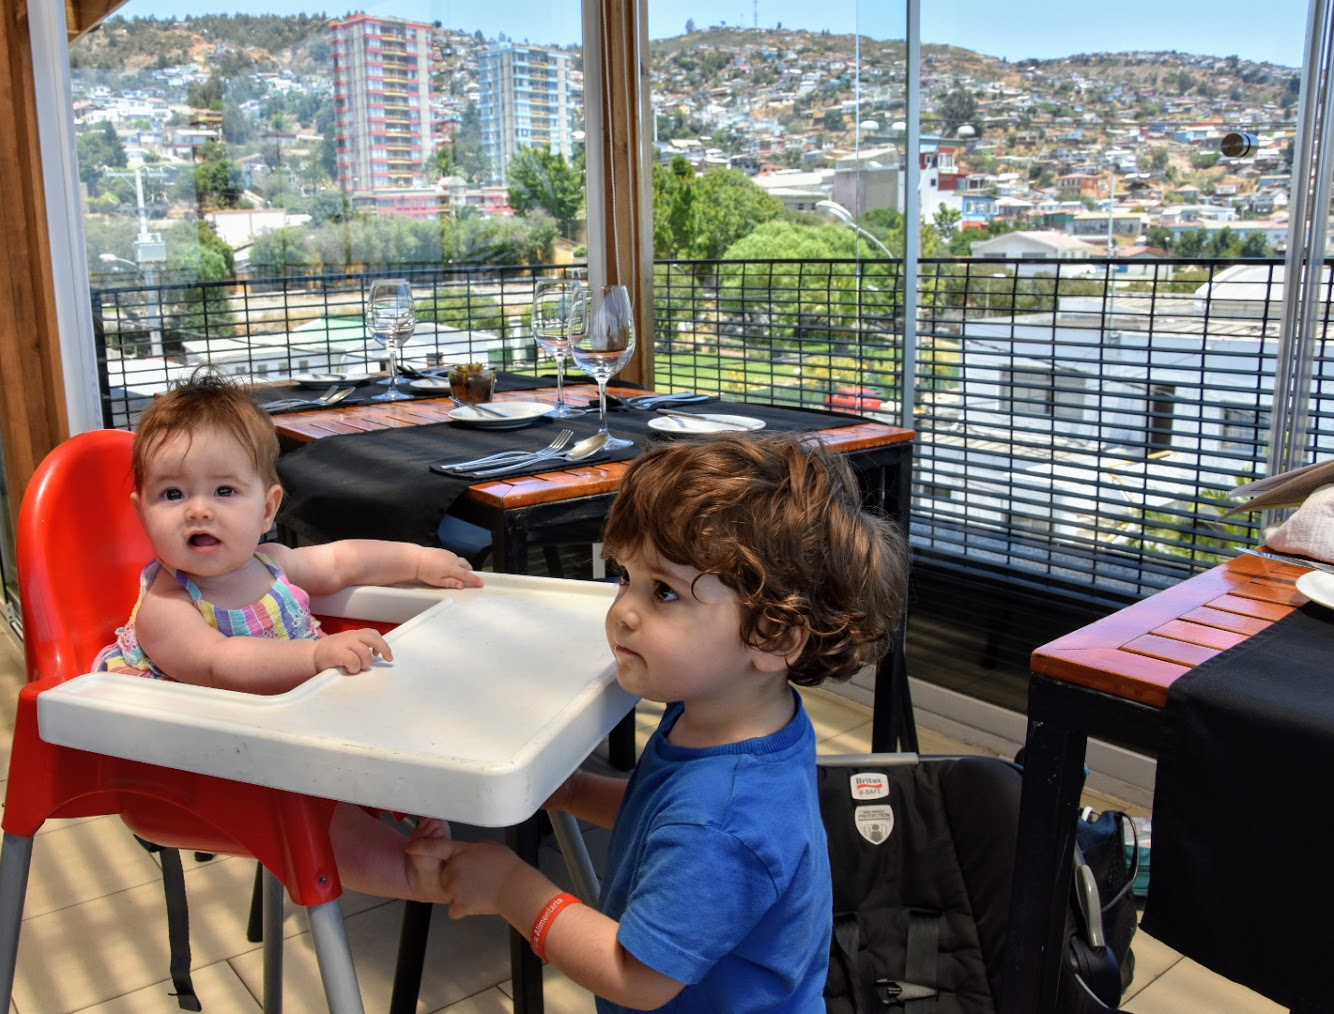 Valparaiso child friendly restaurant